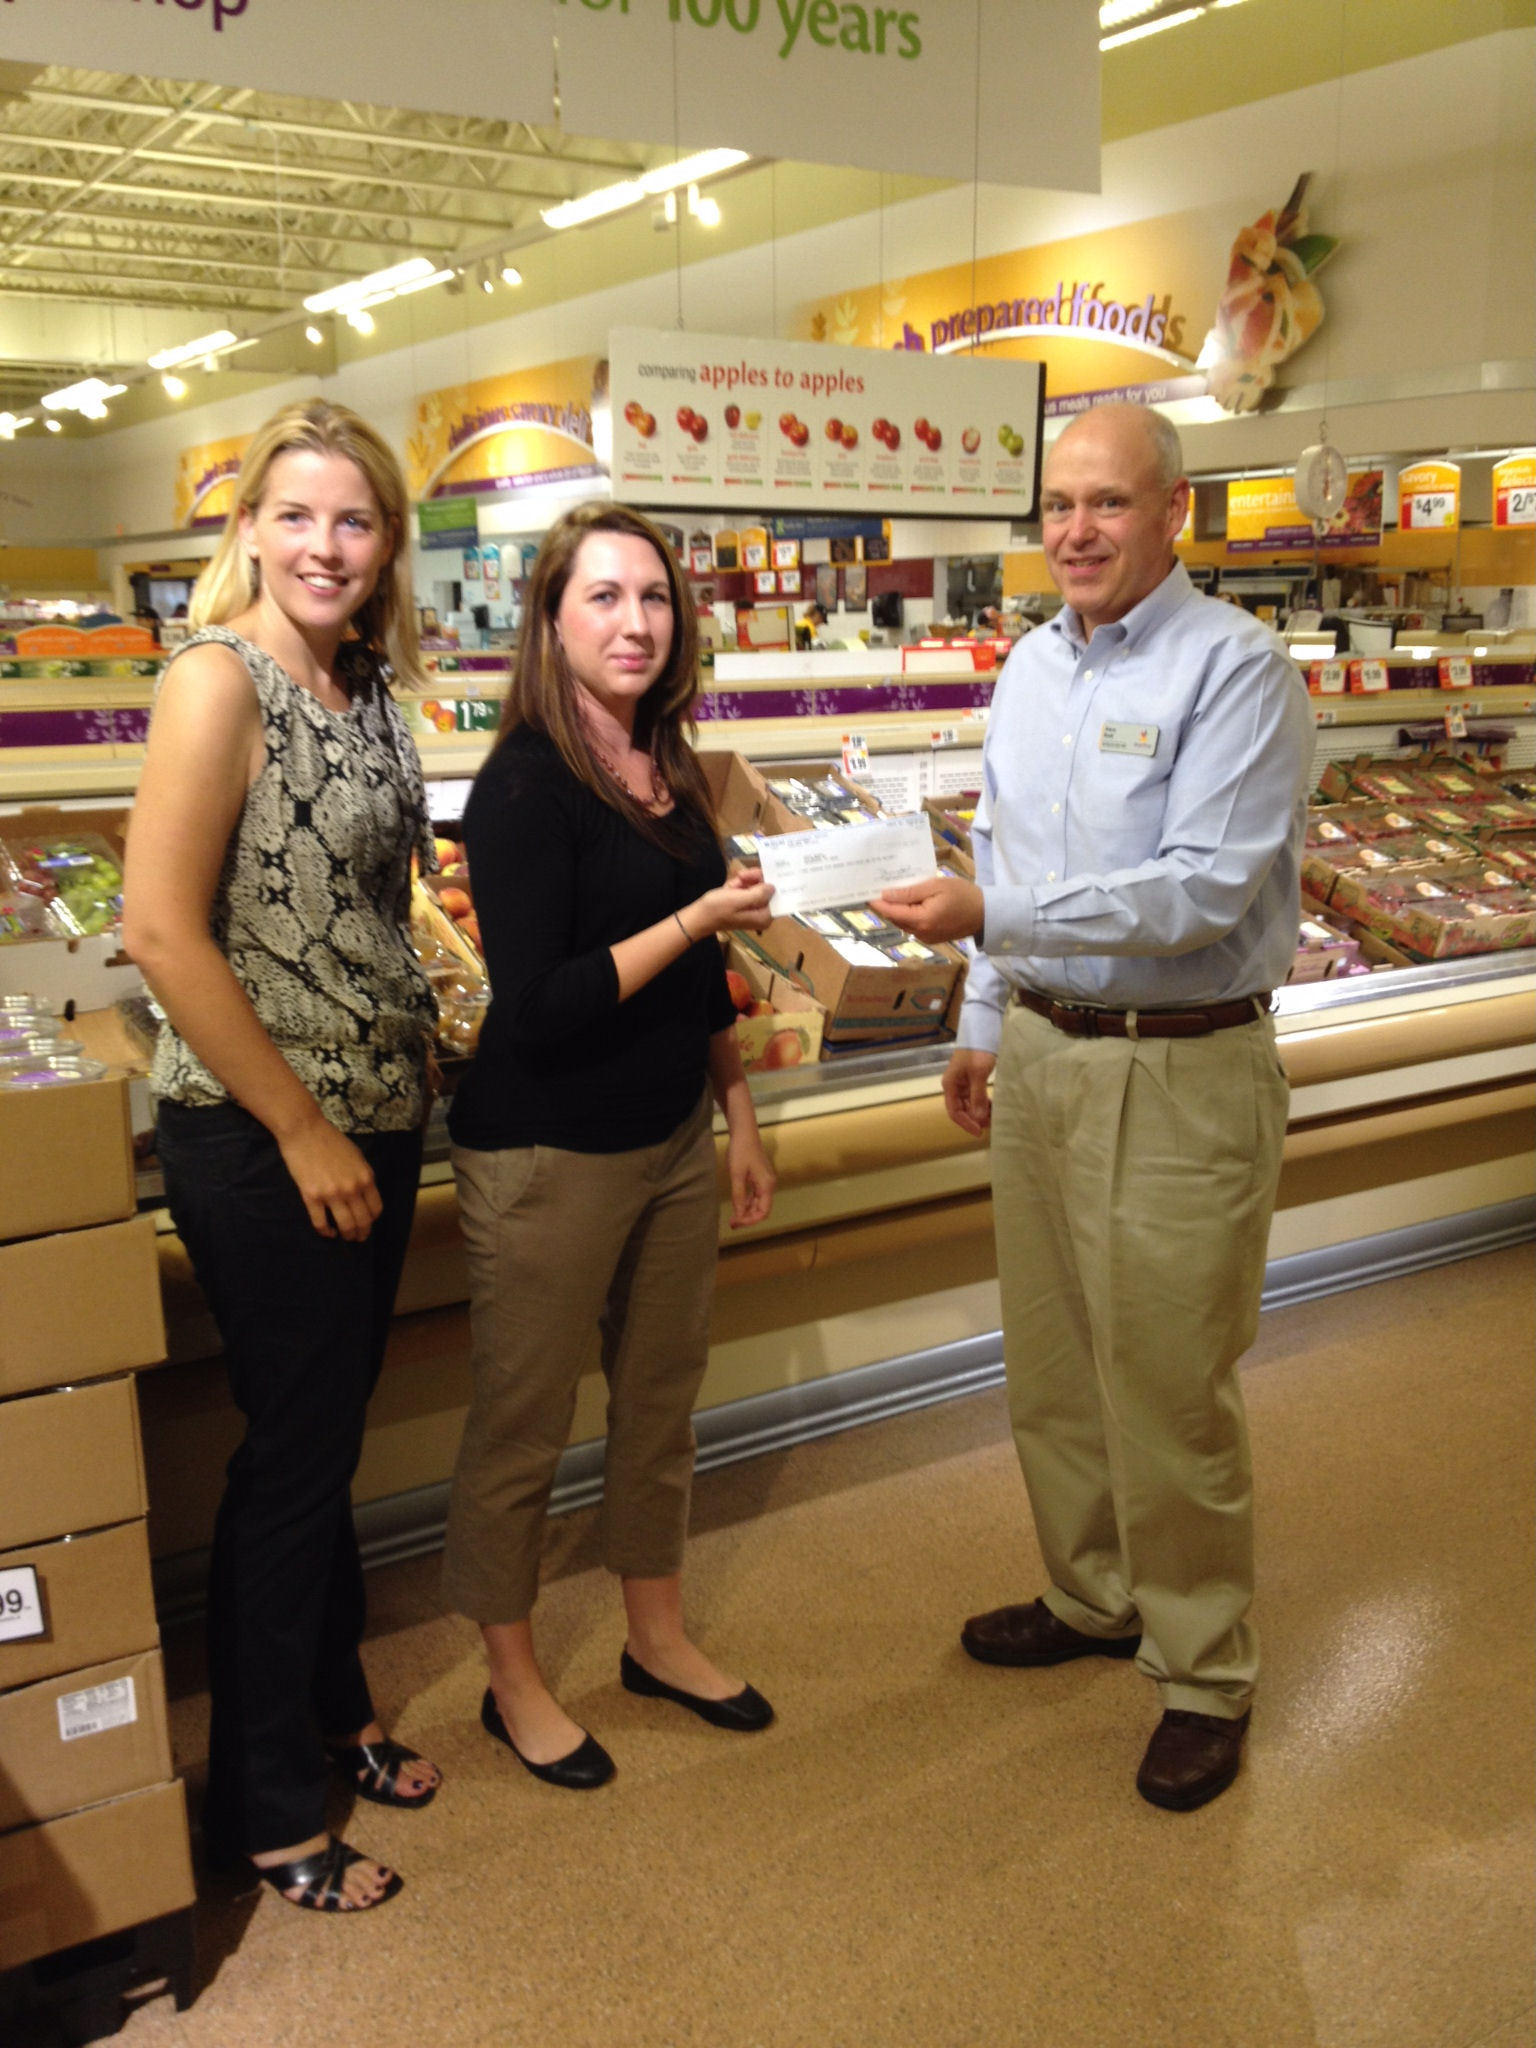 Union School's PTO was able to give $1,500 toward field trips in the 2013-2014 school year because of its participation in Stop & Shop's A School Rewards program. Steve Boyer (far right), store manager of Stop and Shop in Unionville, located just blocks away from Union School, presented Kara Rapp, (far right) PTO Stop & Shop Committee Chair, and Nichole Bittner, PTO President, with a $1,500 check on June 7th. Union School in Farmington is a kindergarten through fourth grade elementary school, recognized as a National Exemplary School by the U.S. Department of Education.